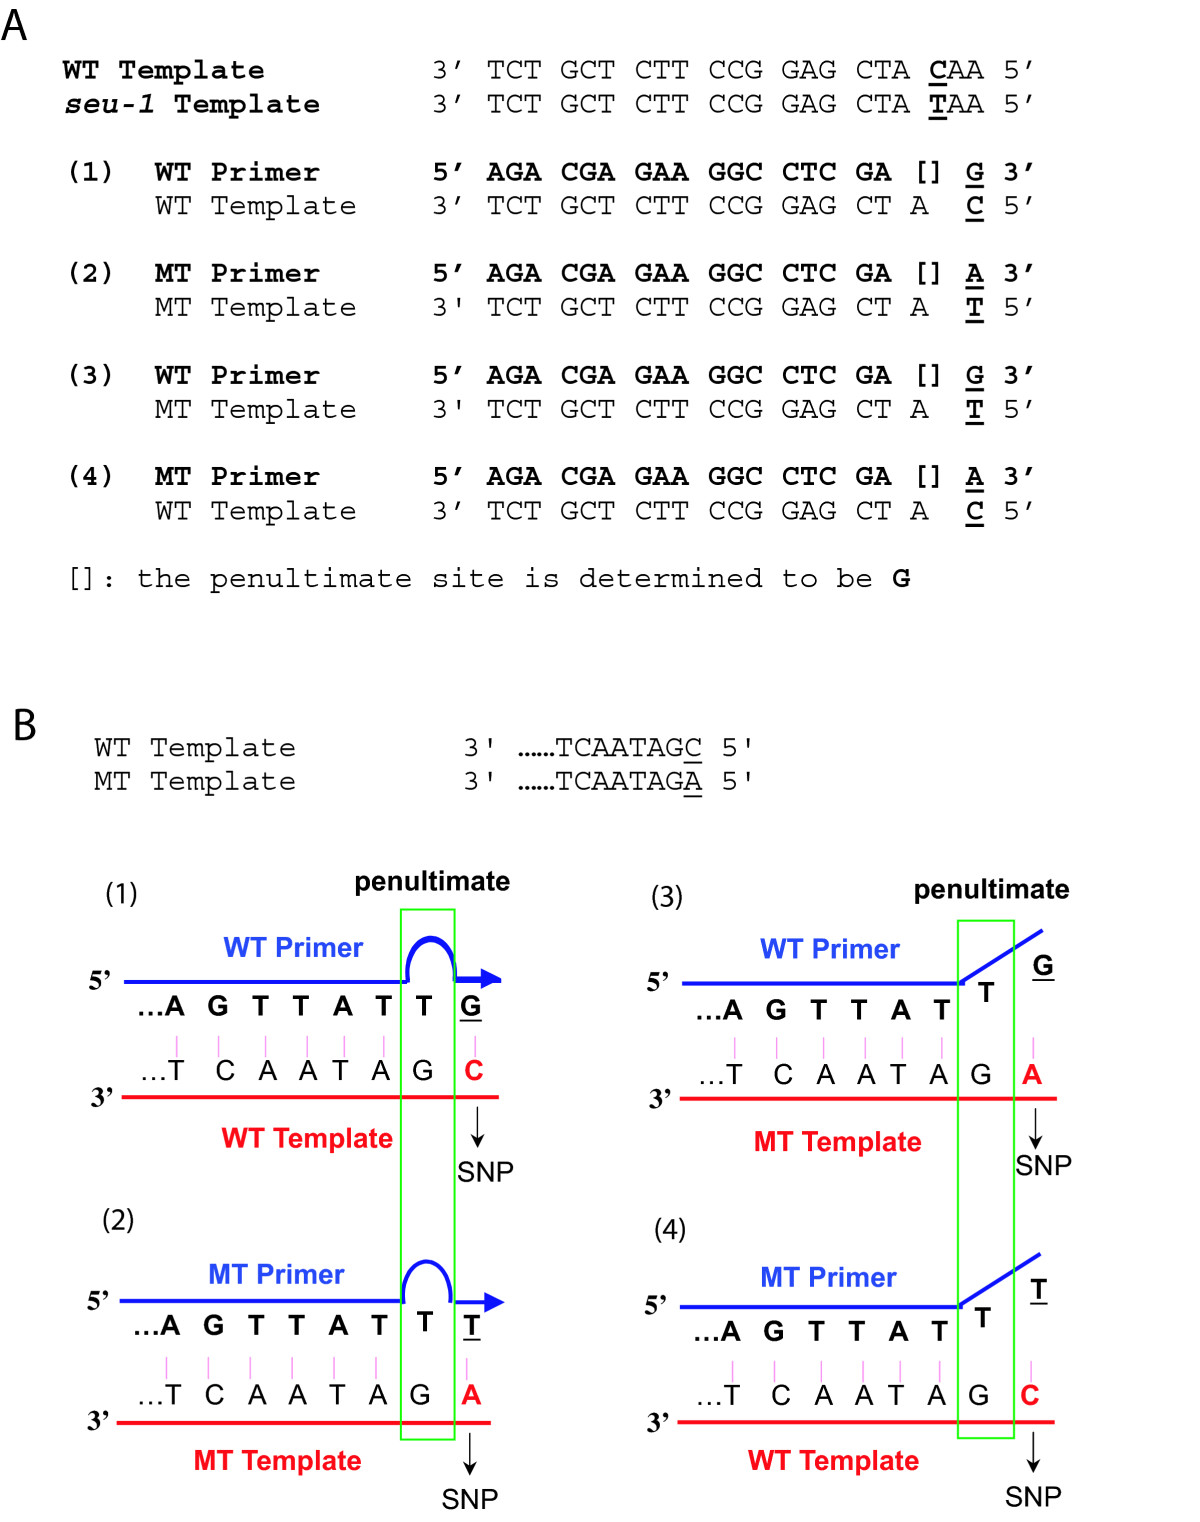 http://static-content.springer.com/image/art%3A10.1186%2F1746-4811-5-1/MediaObjects/13007_2008_Article_76_Fig1_HTML.jpg